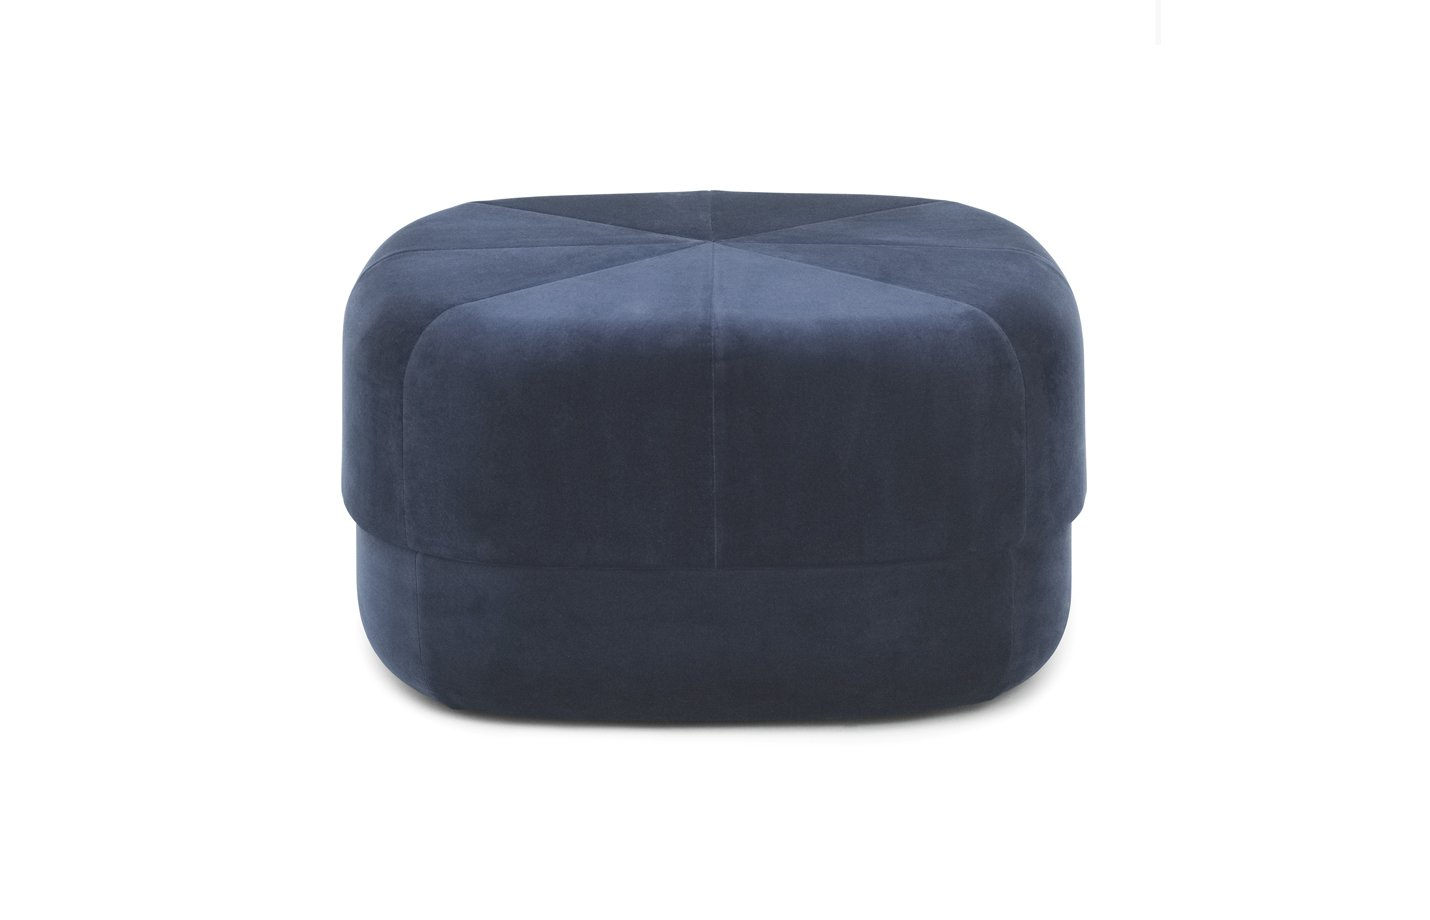 Circus pouf – large – dark blue